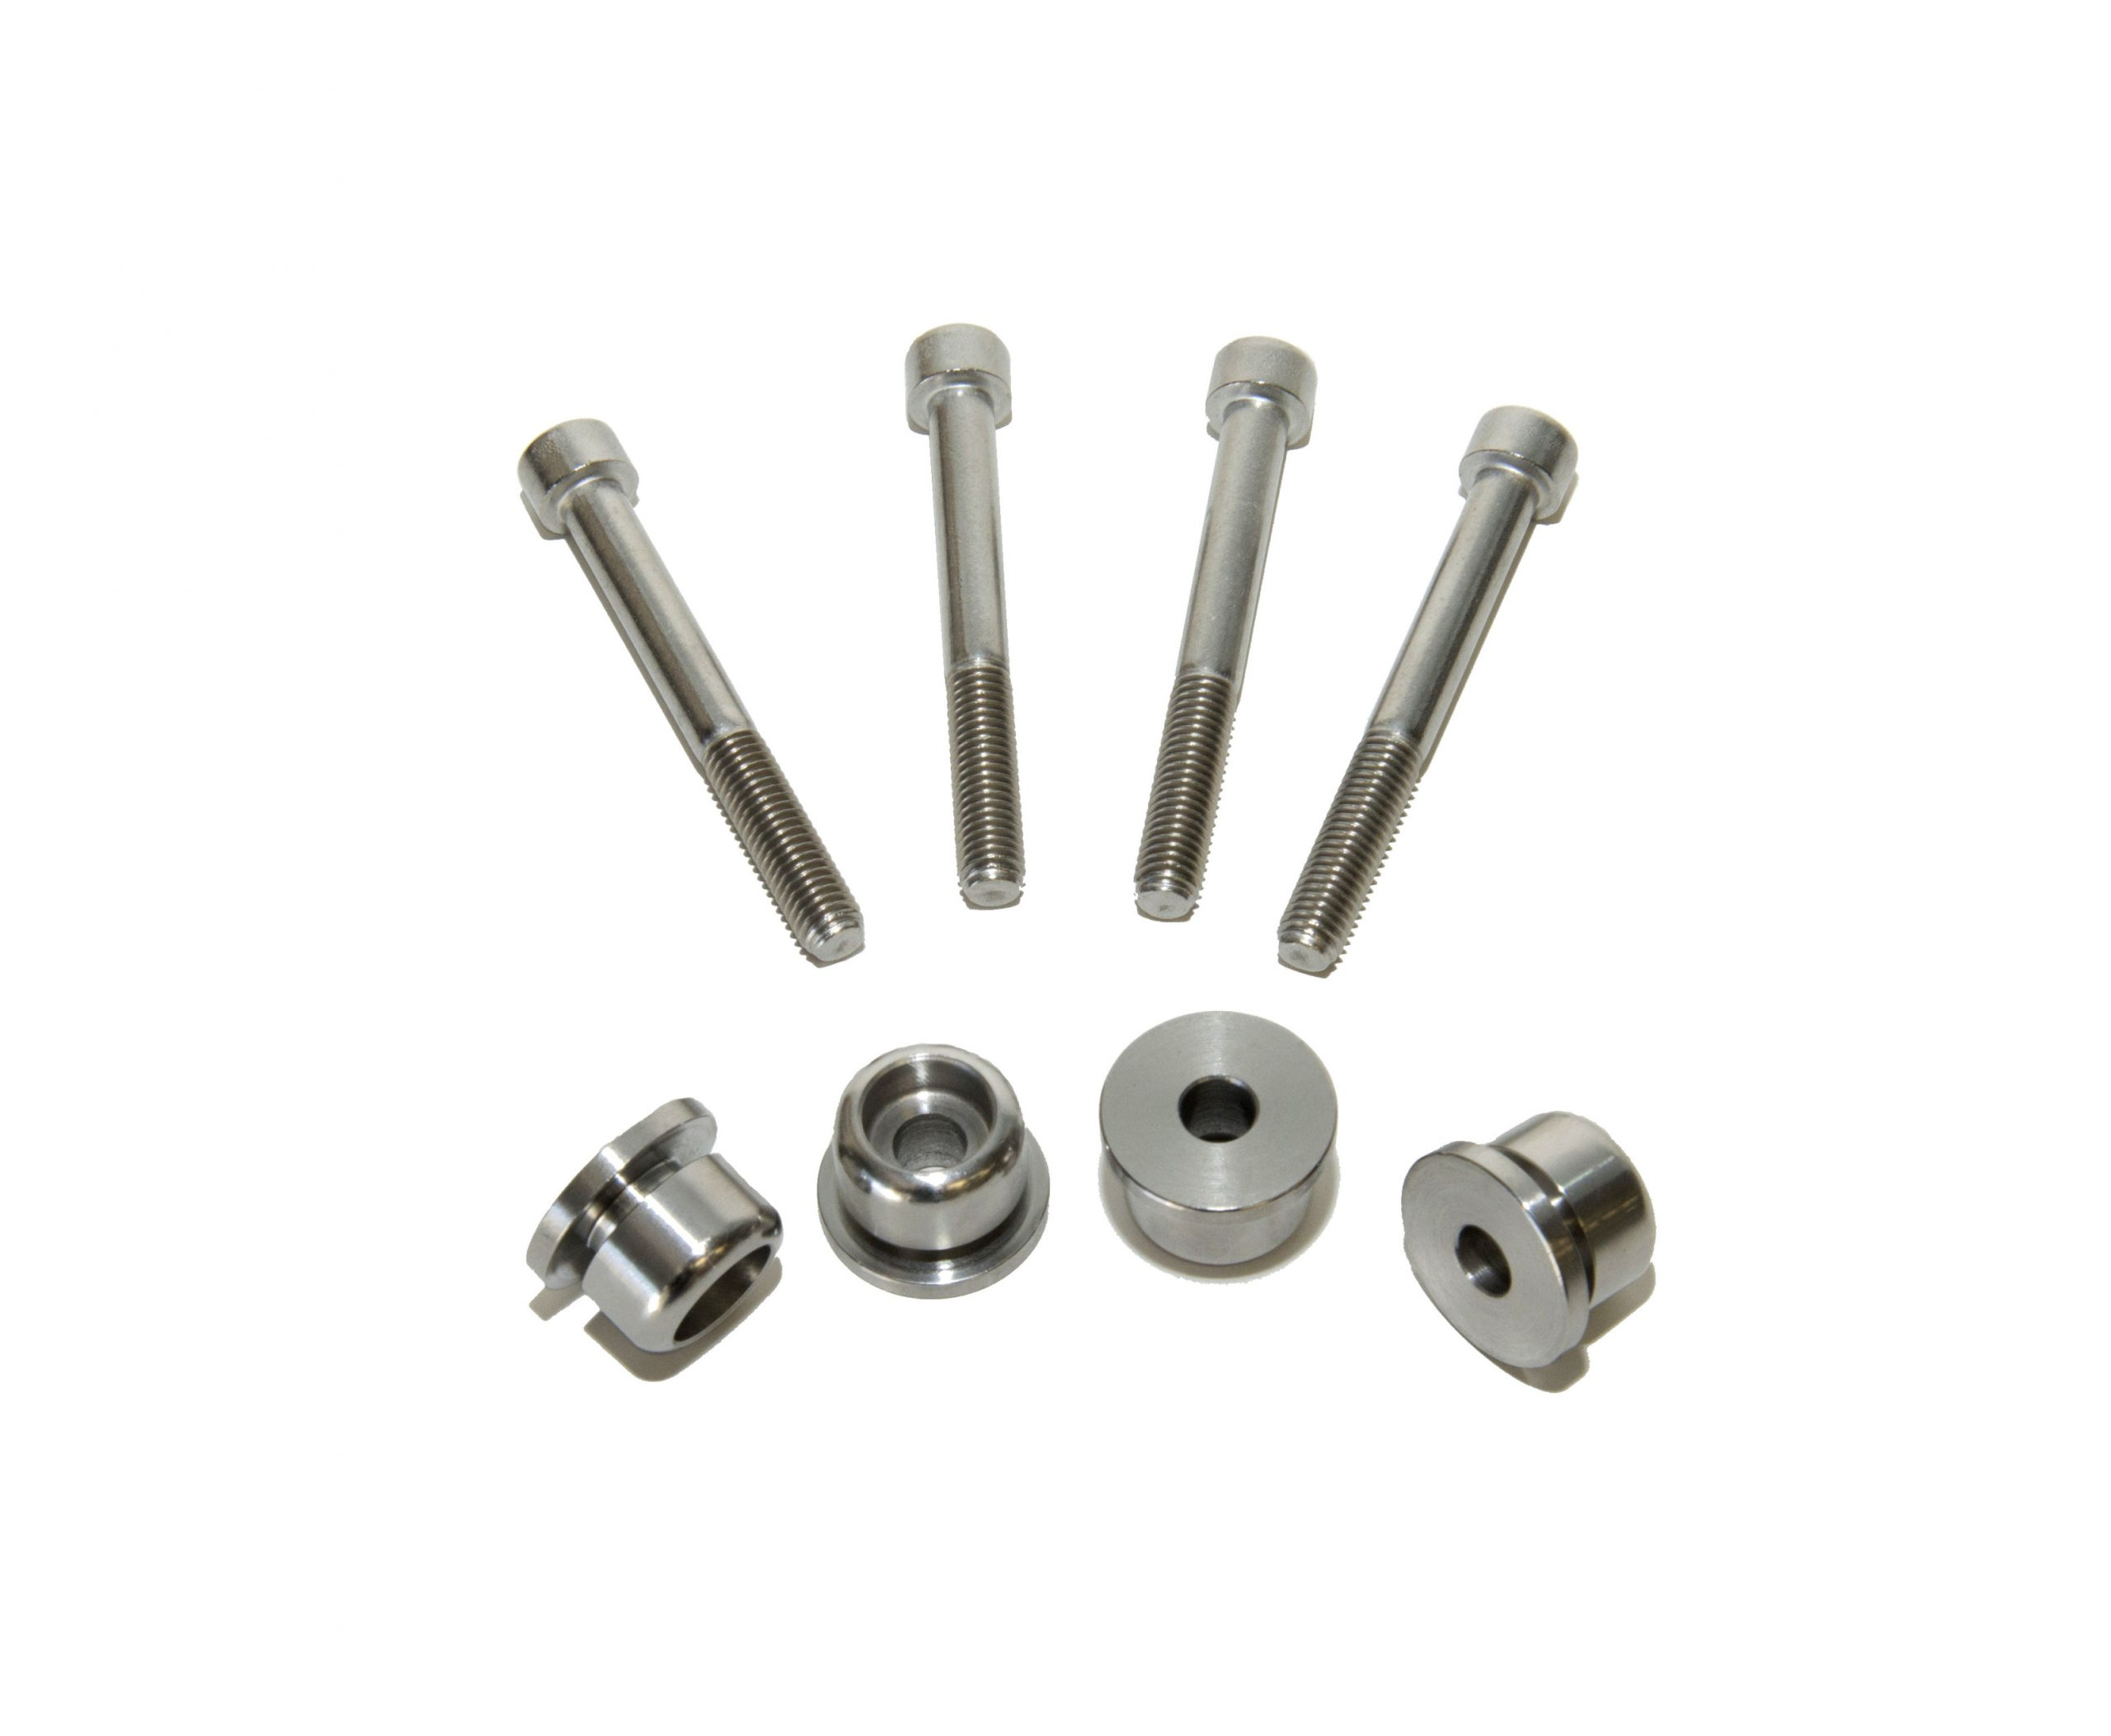 Easy Brackets hardware for ACE 1100